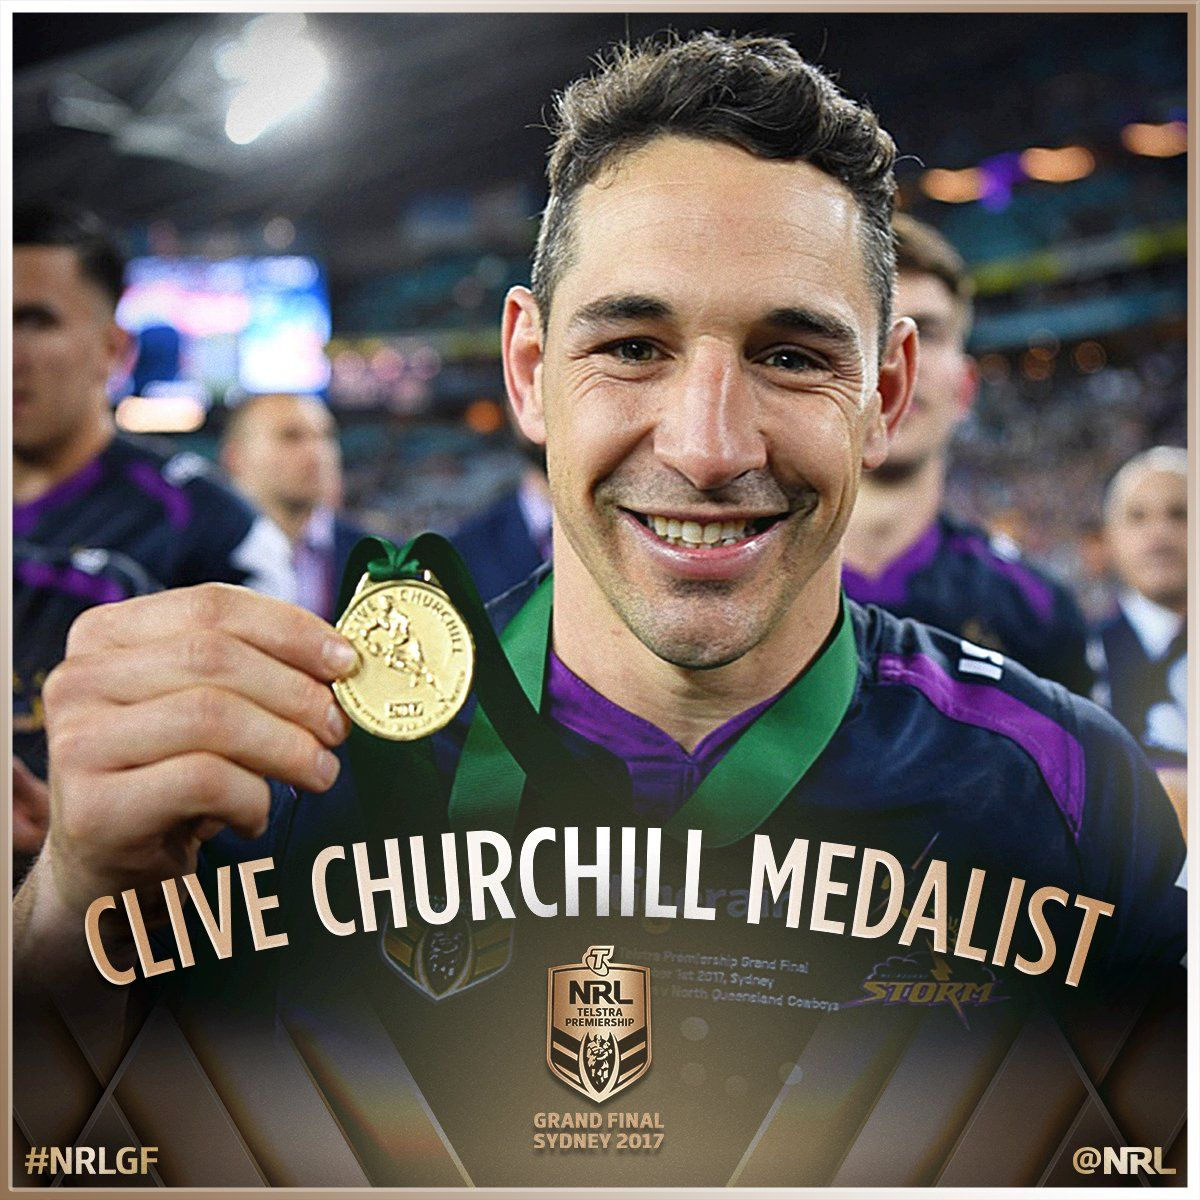 Congratulations To The 2017 Clive Churchill Medalist Billy Slater Nrlgf Nrl Nrl Rugby League League